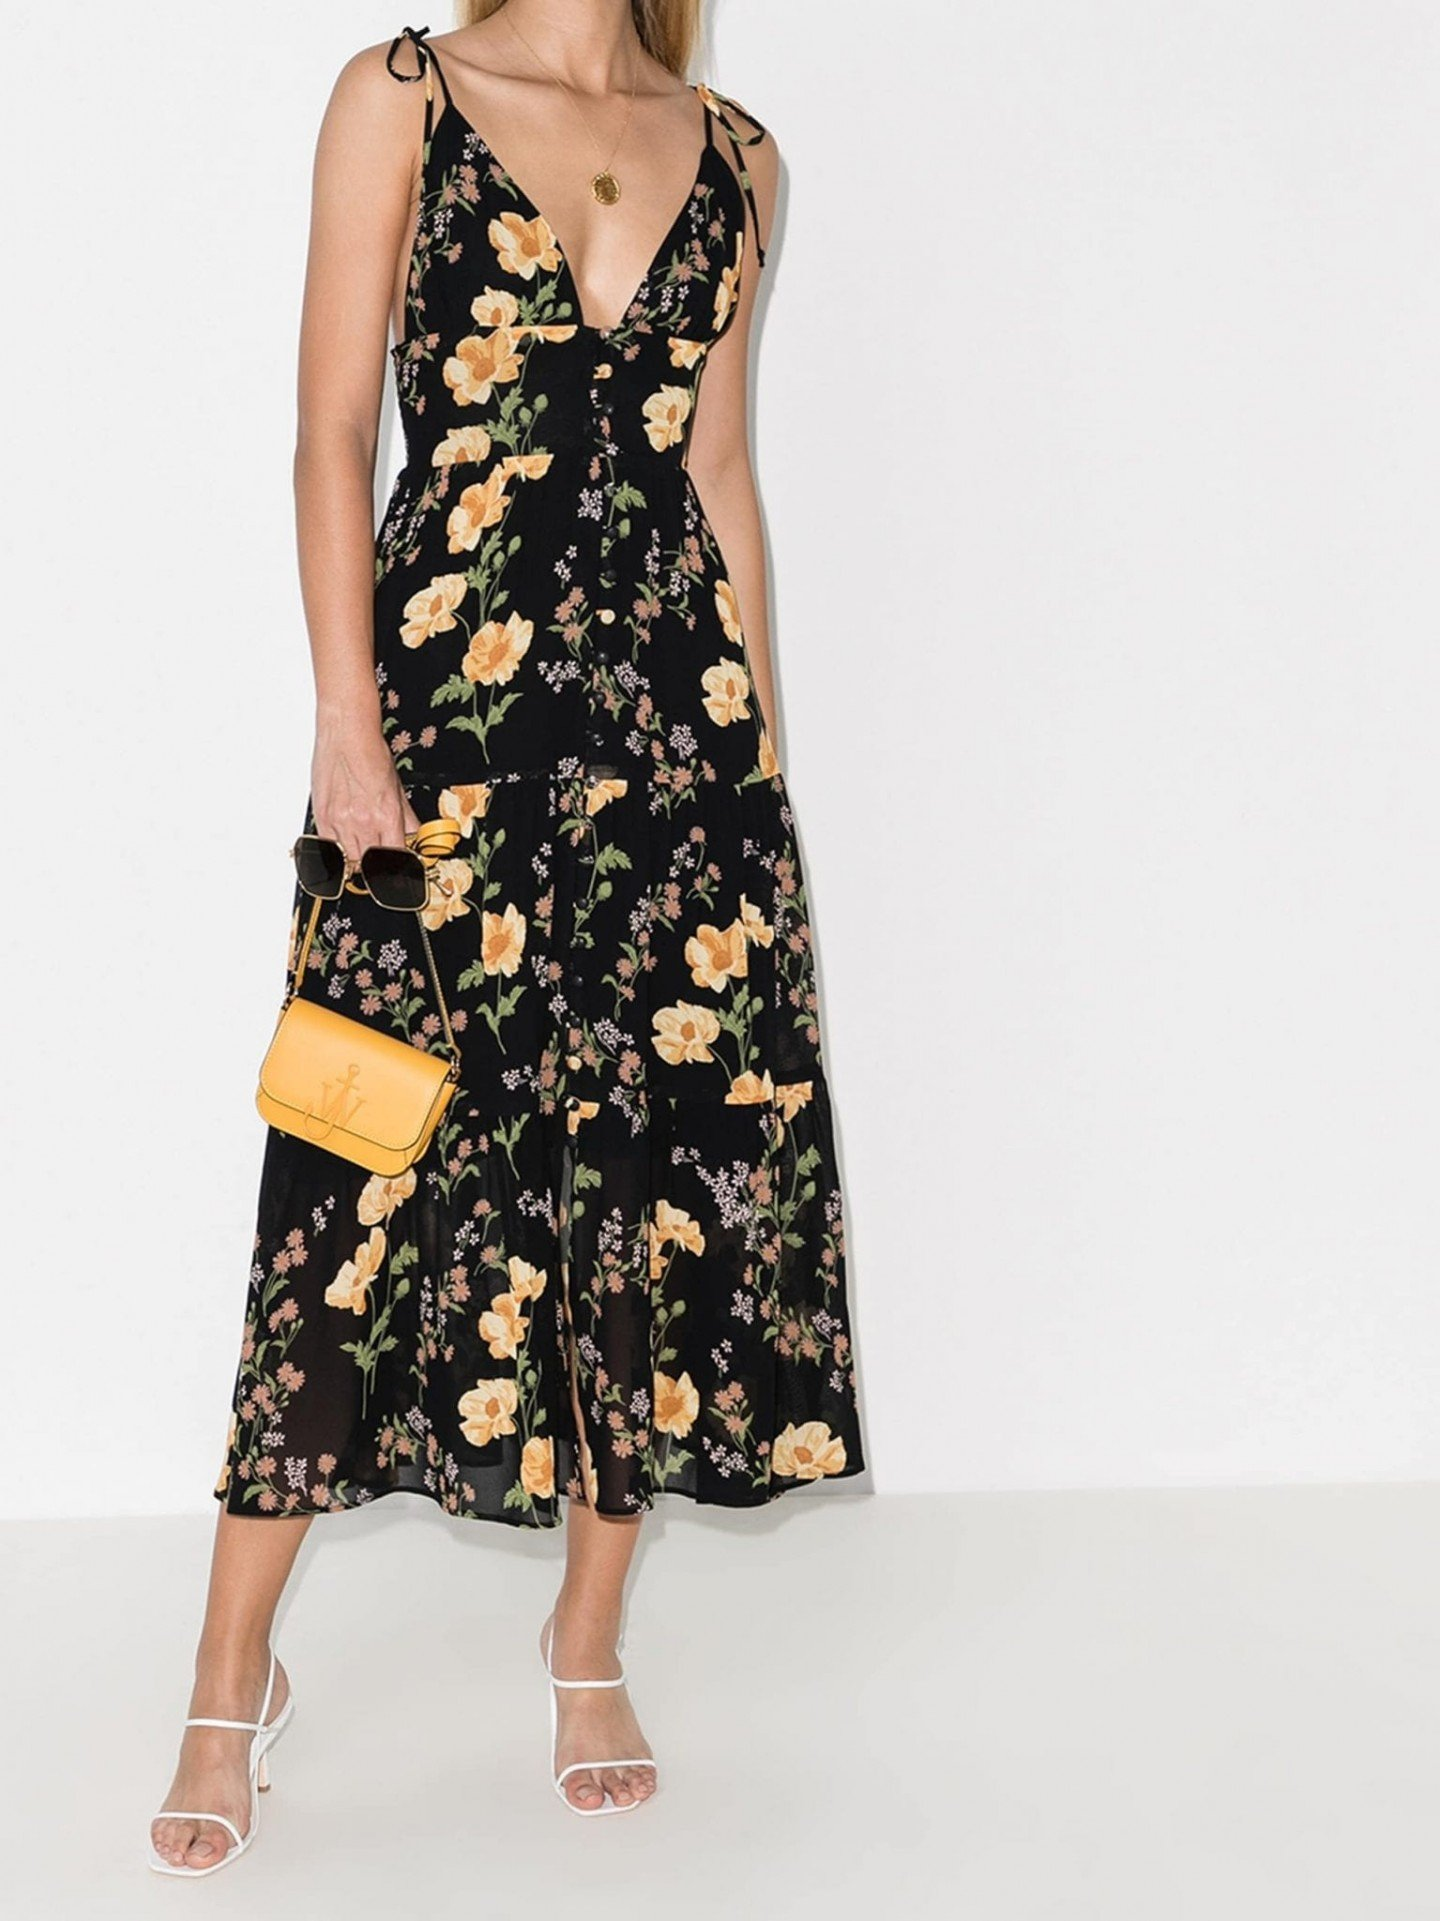 REFORMATION Jaden Floral-Print Midi Dress